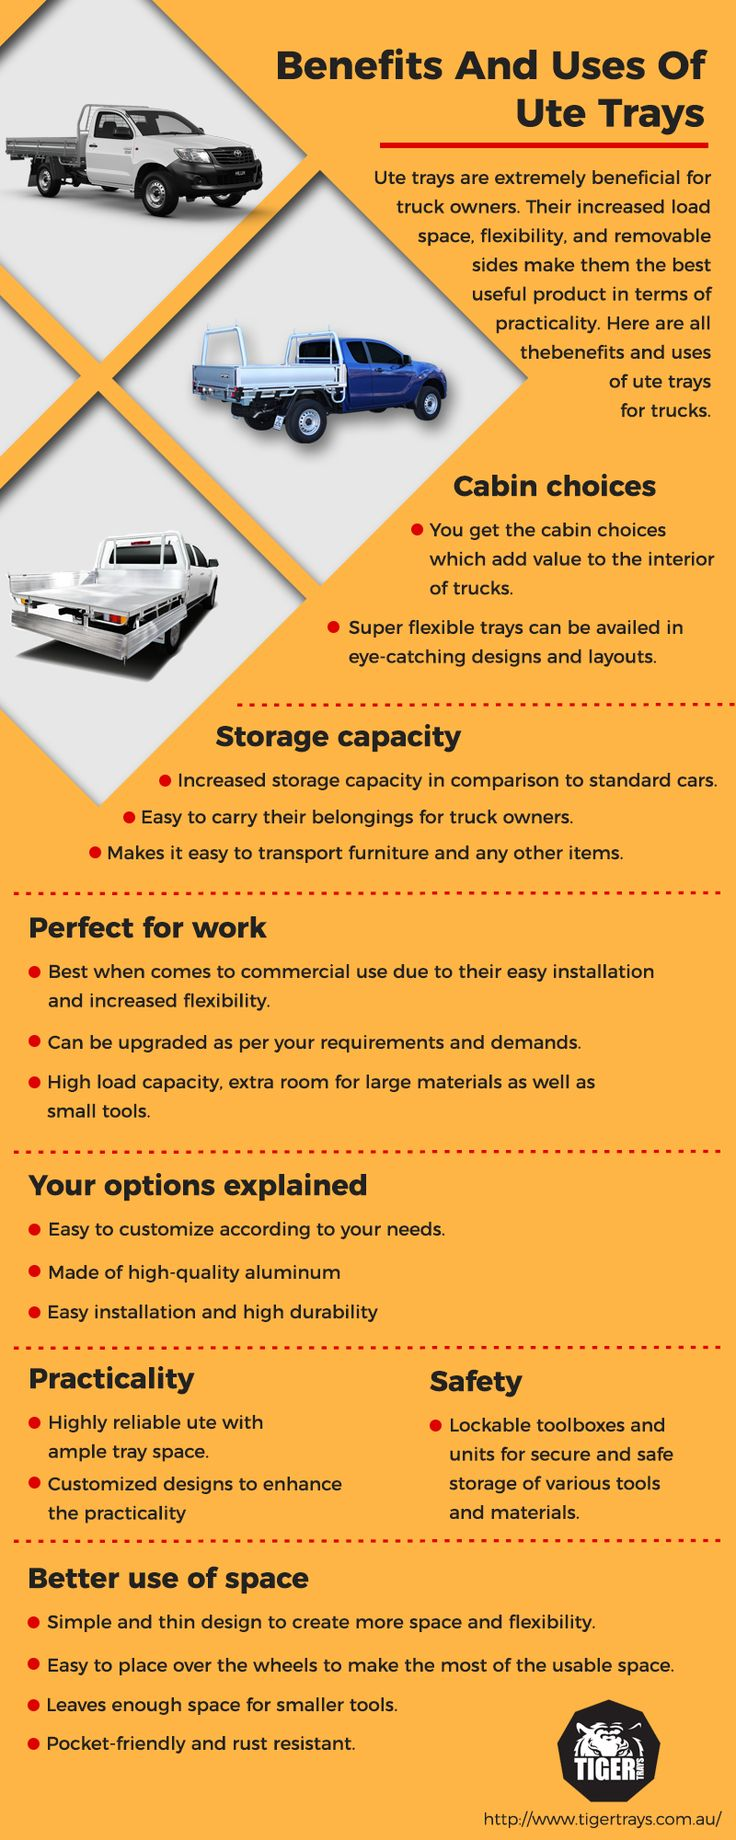 Ute trays come with numerous benefits in terms of practicality due to their flexibility, spaciousness and high strength. Know more benefits of these Ute trays, in this infographic.